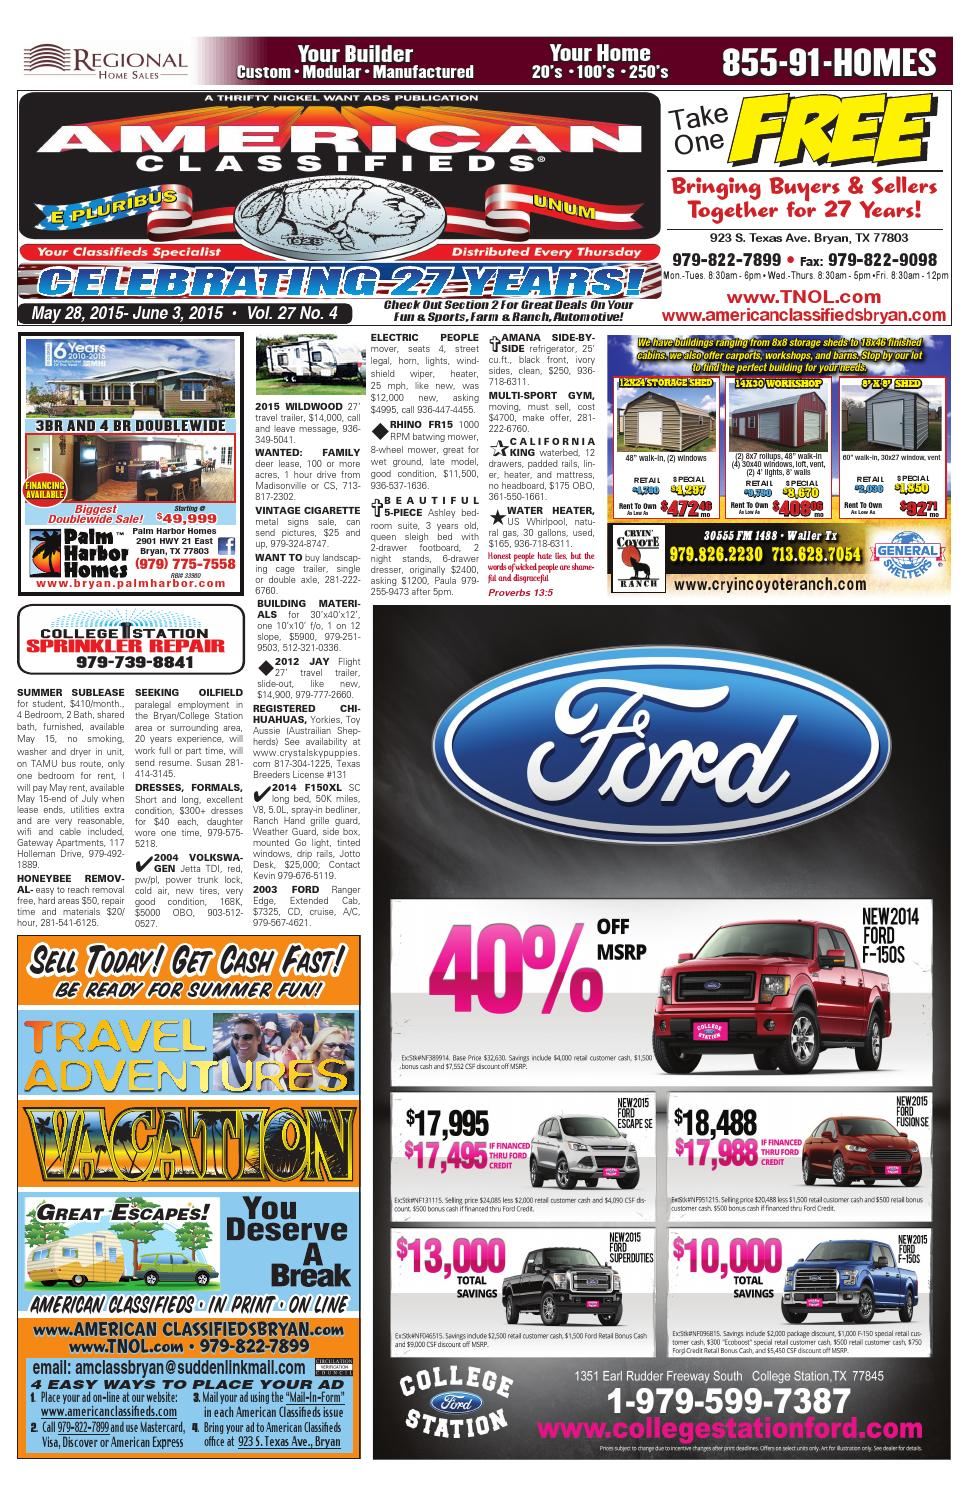 American Classifieds May 28th Edition Bryancollege Station By